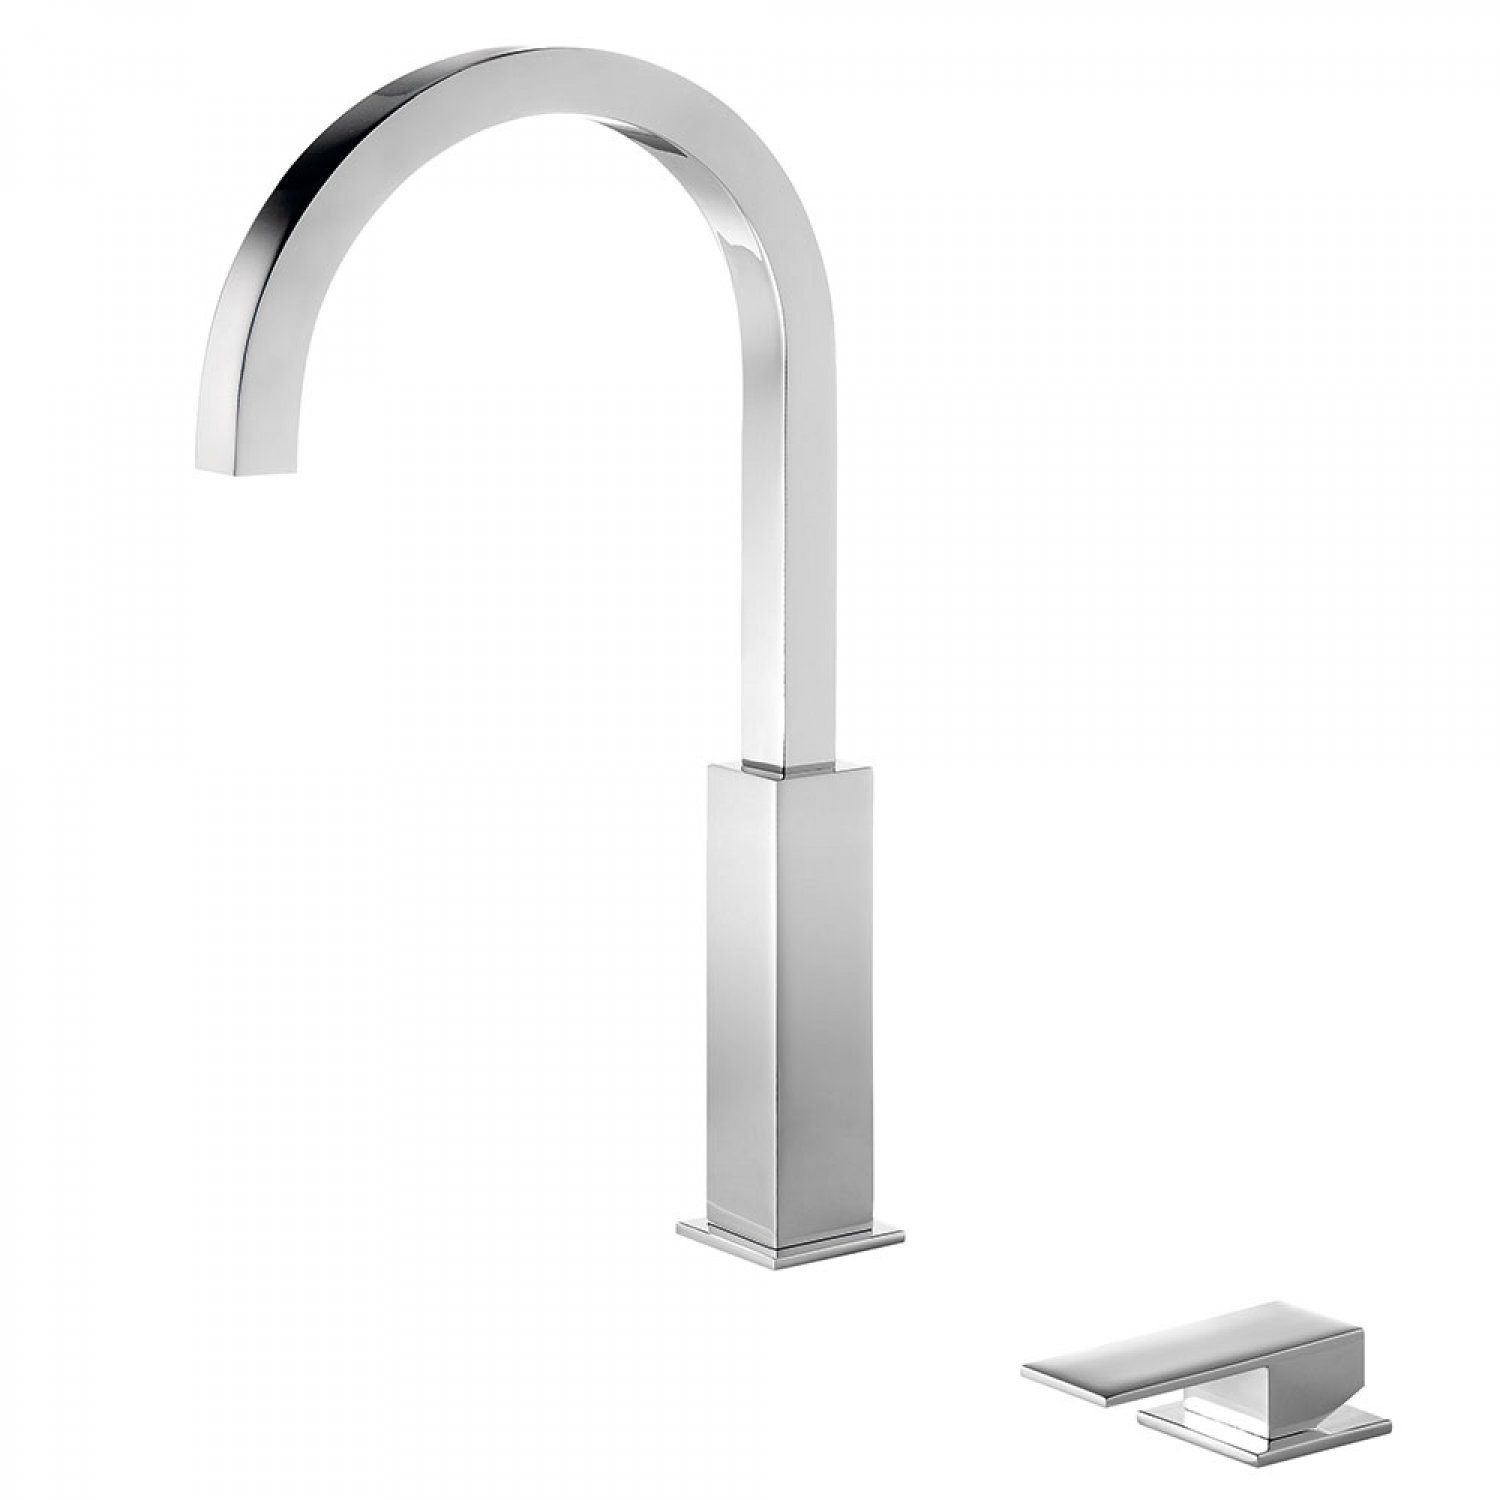 http://desidea.hu/wp-content/uploads/2019/07/Single-lever-wall-washbasin-mixer-00610504.jpg